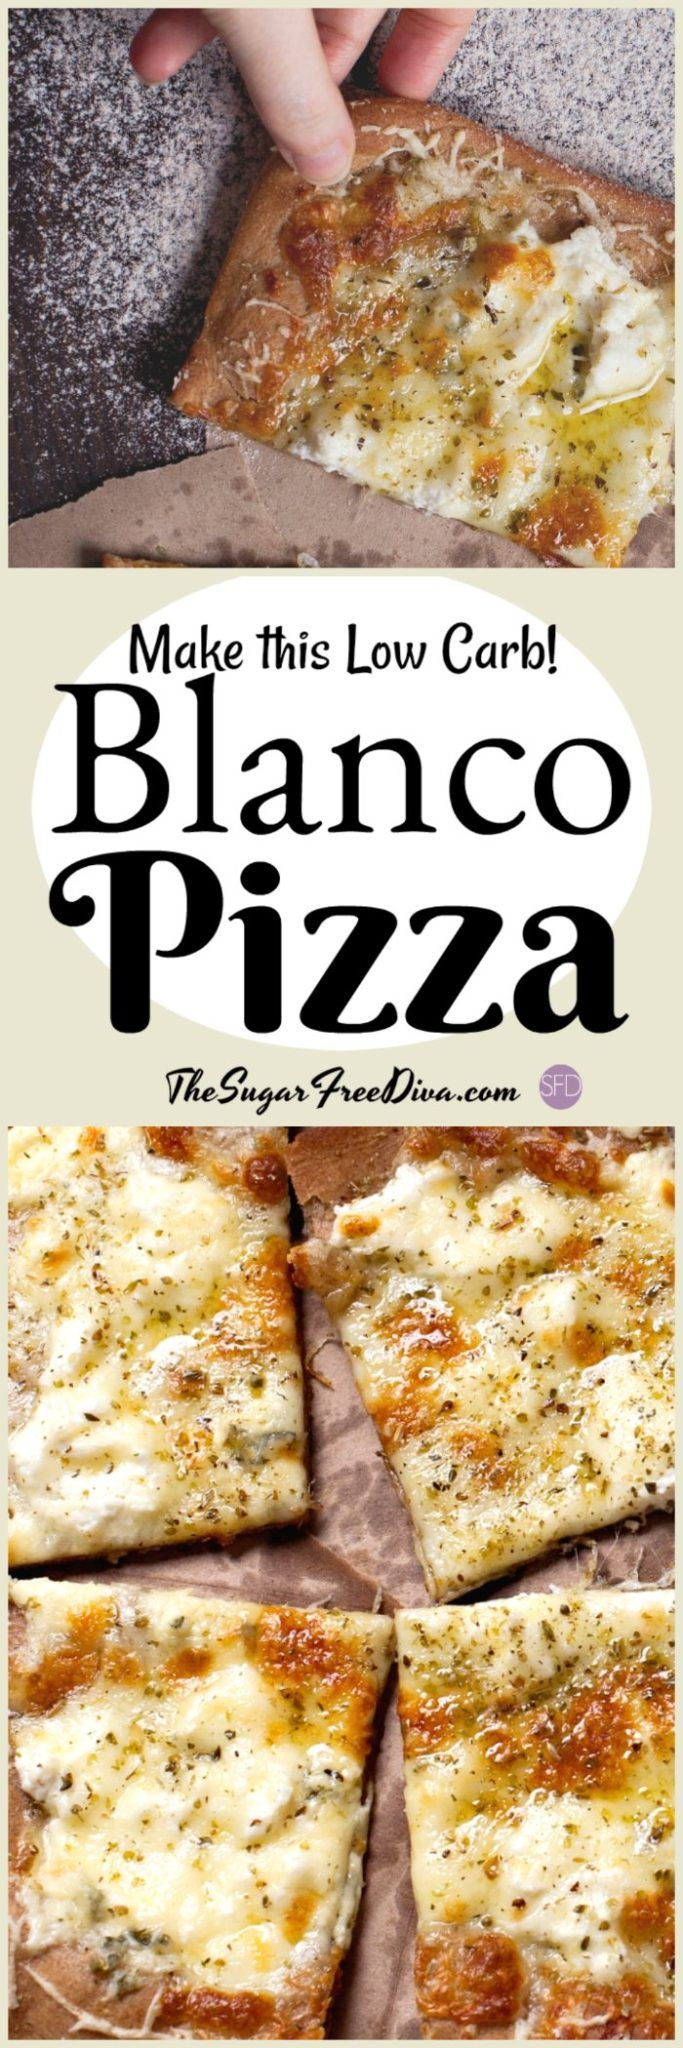 Low Carb Blanco Pizza